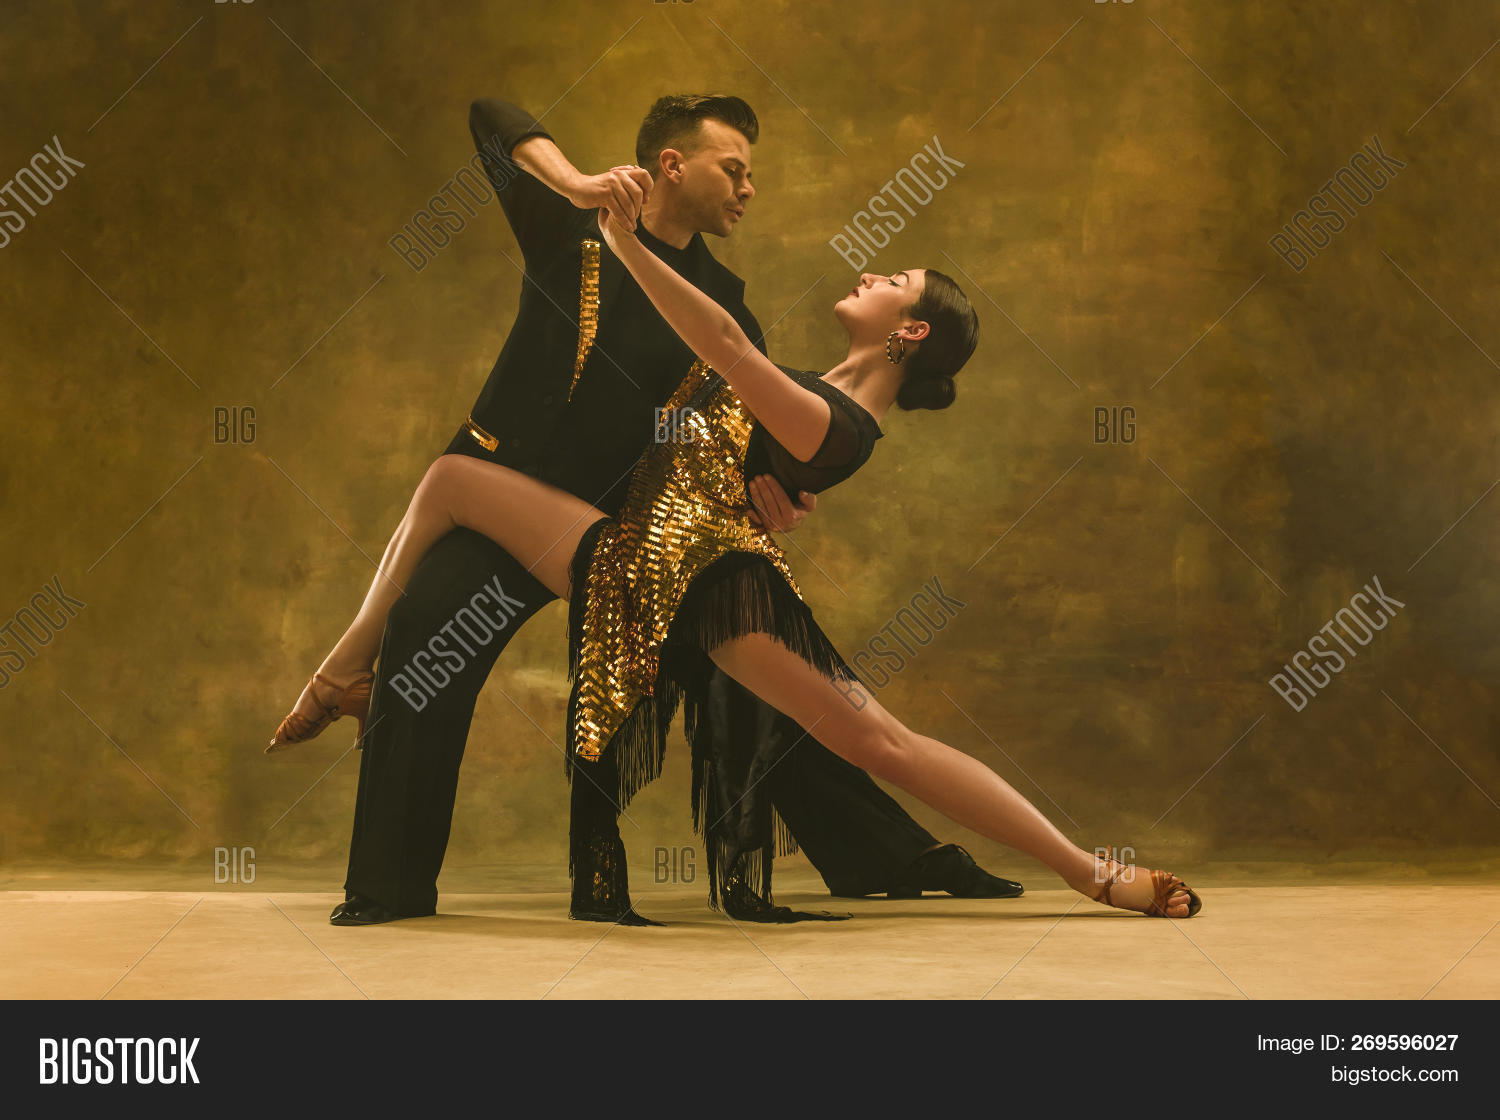 20s,action,adult,attractive,ballroom,beautiful,beauty,choreography,contemporary,couple,dance,dancers,disco,elegance,emotion,entertainment,expressions,fashion,female,girl,gold,health,hispanic,hot,latin,latino,lovely,male,man,modern,motion,movement,moving,passion,people,performance,performer,pose,posing,red,salsa,skill,sport,style,tango,two,white,woman,young